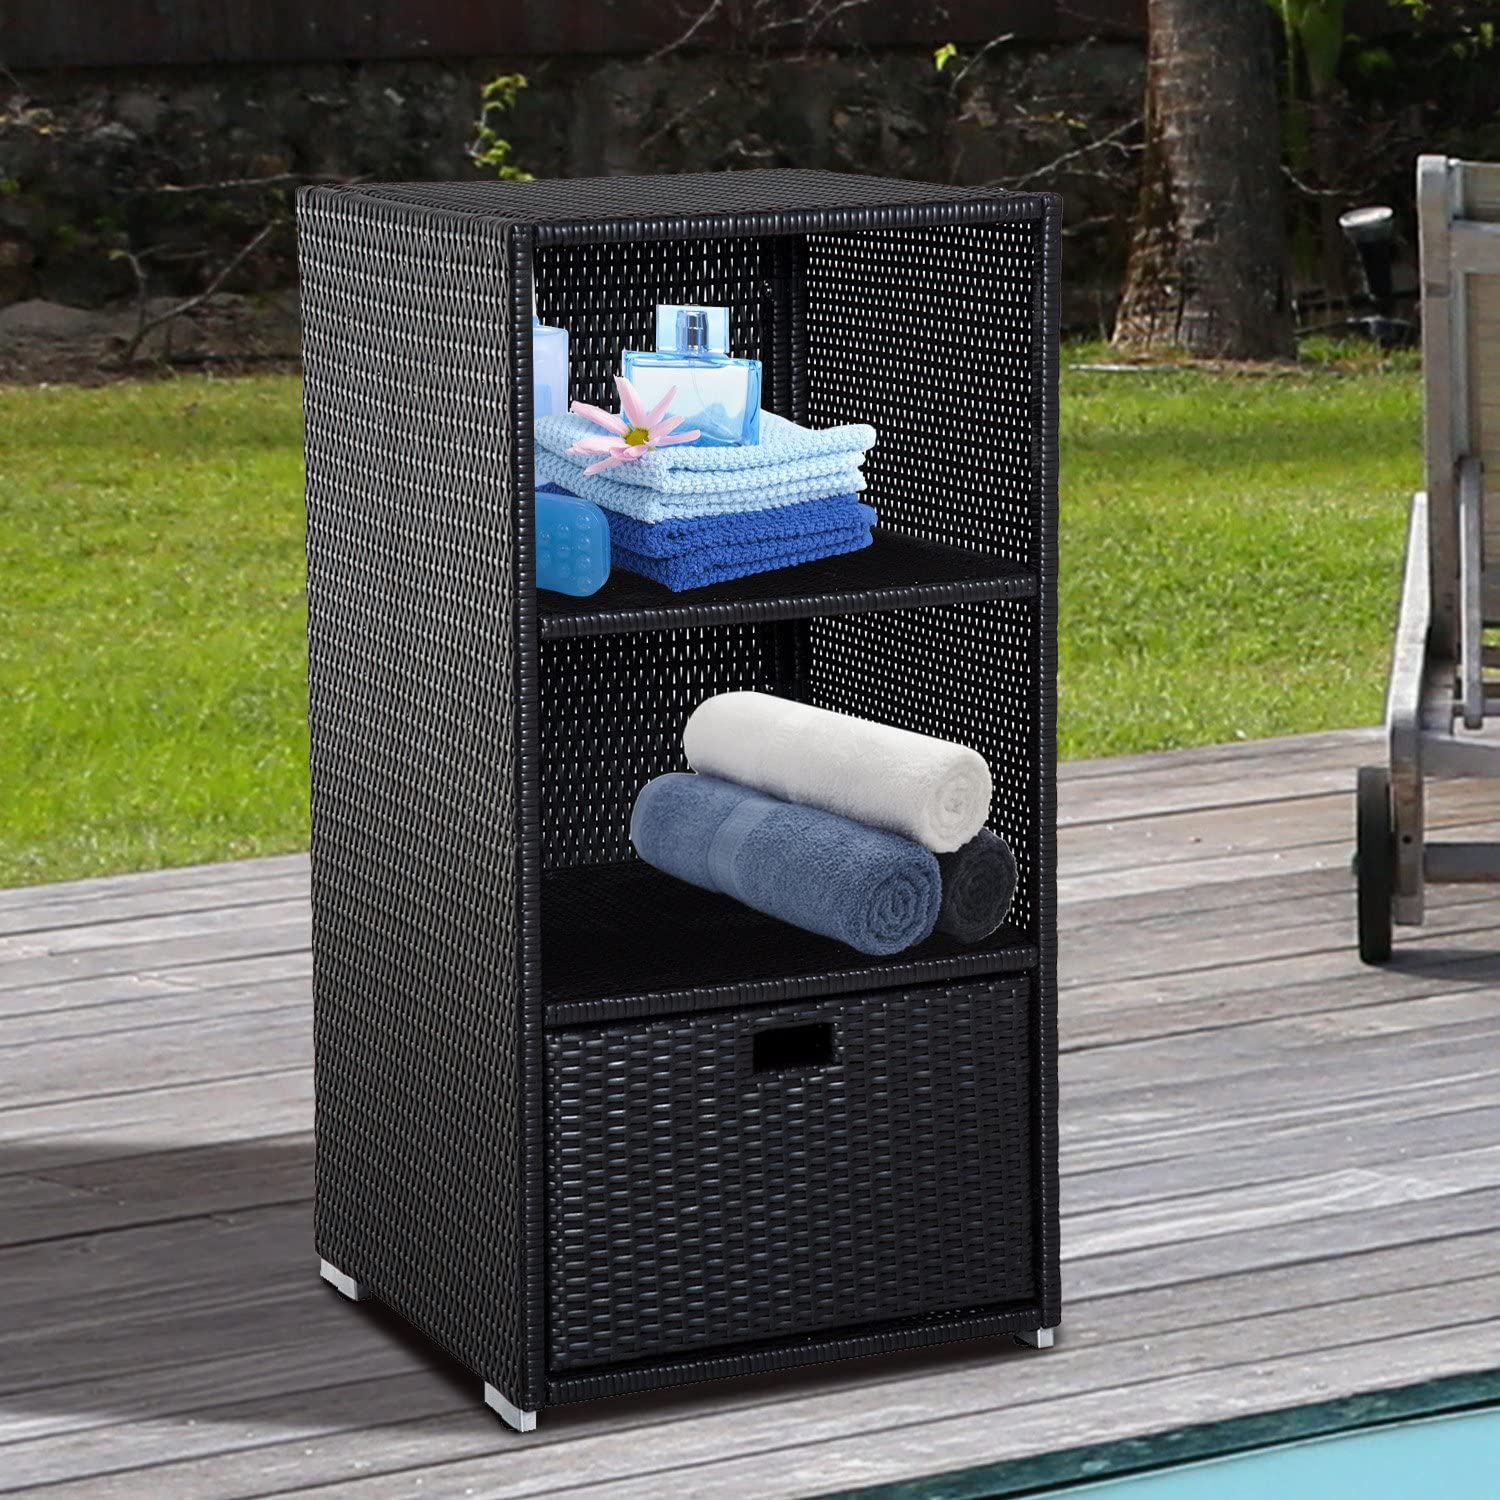 Outsunny Outdoor Wicker Pool Towel Storage Valet Holder